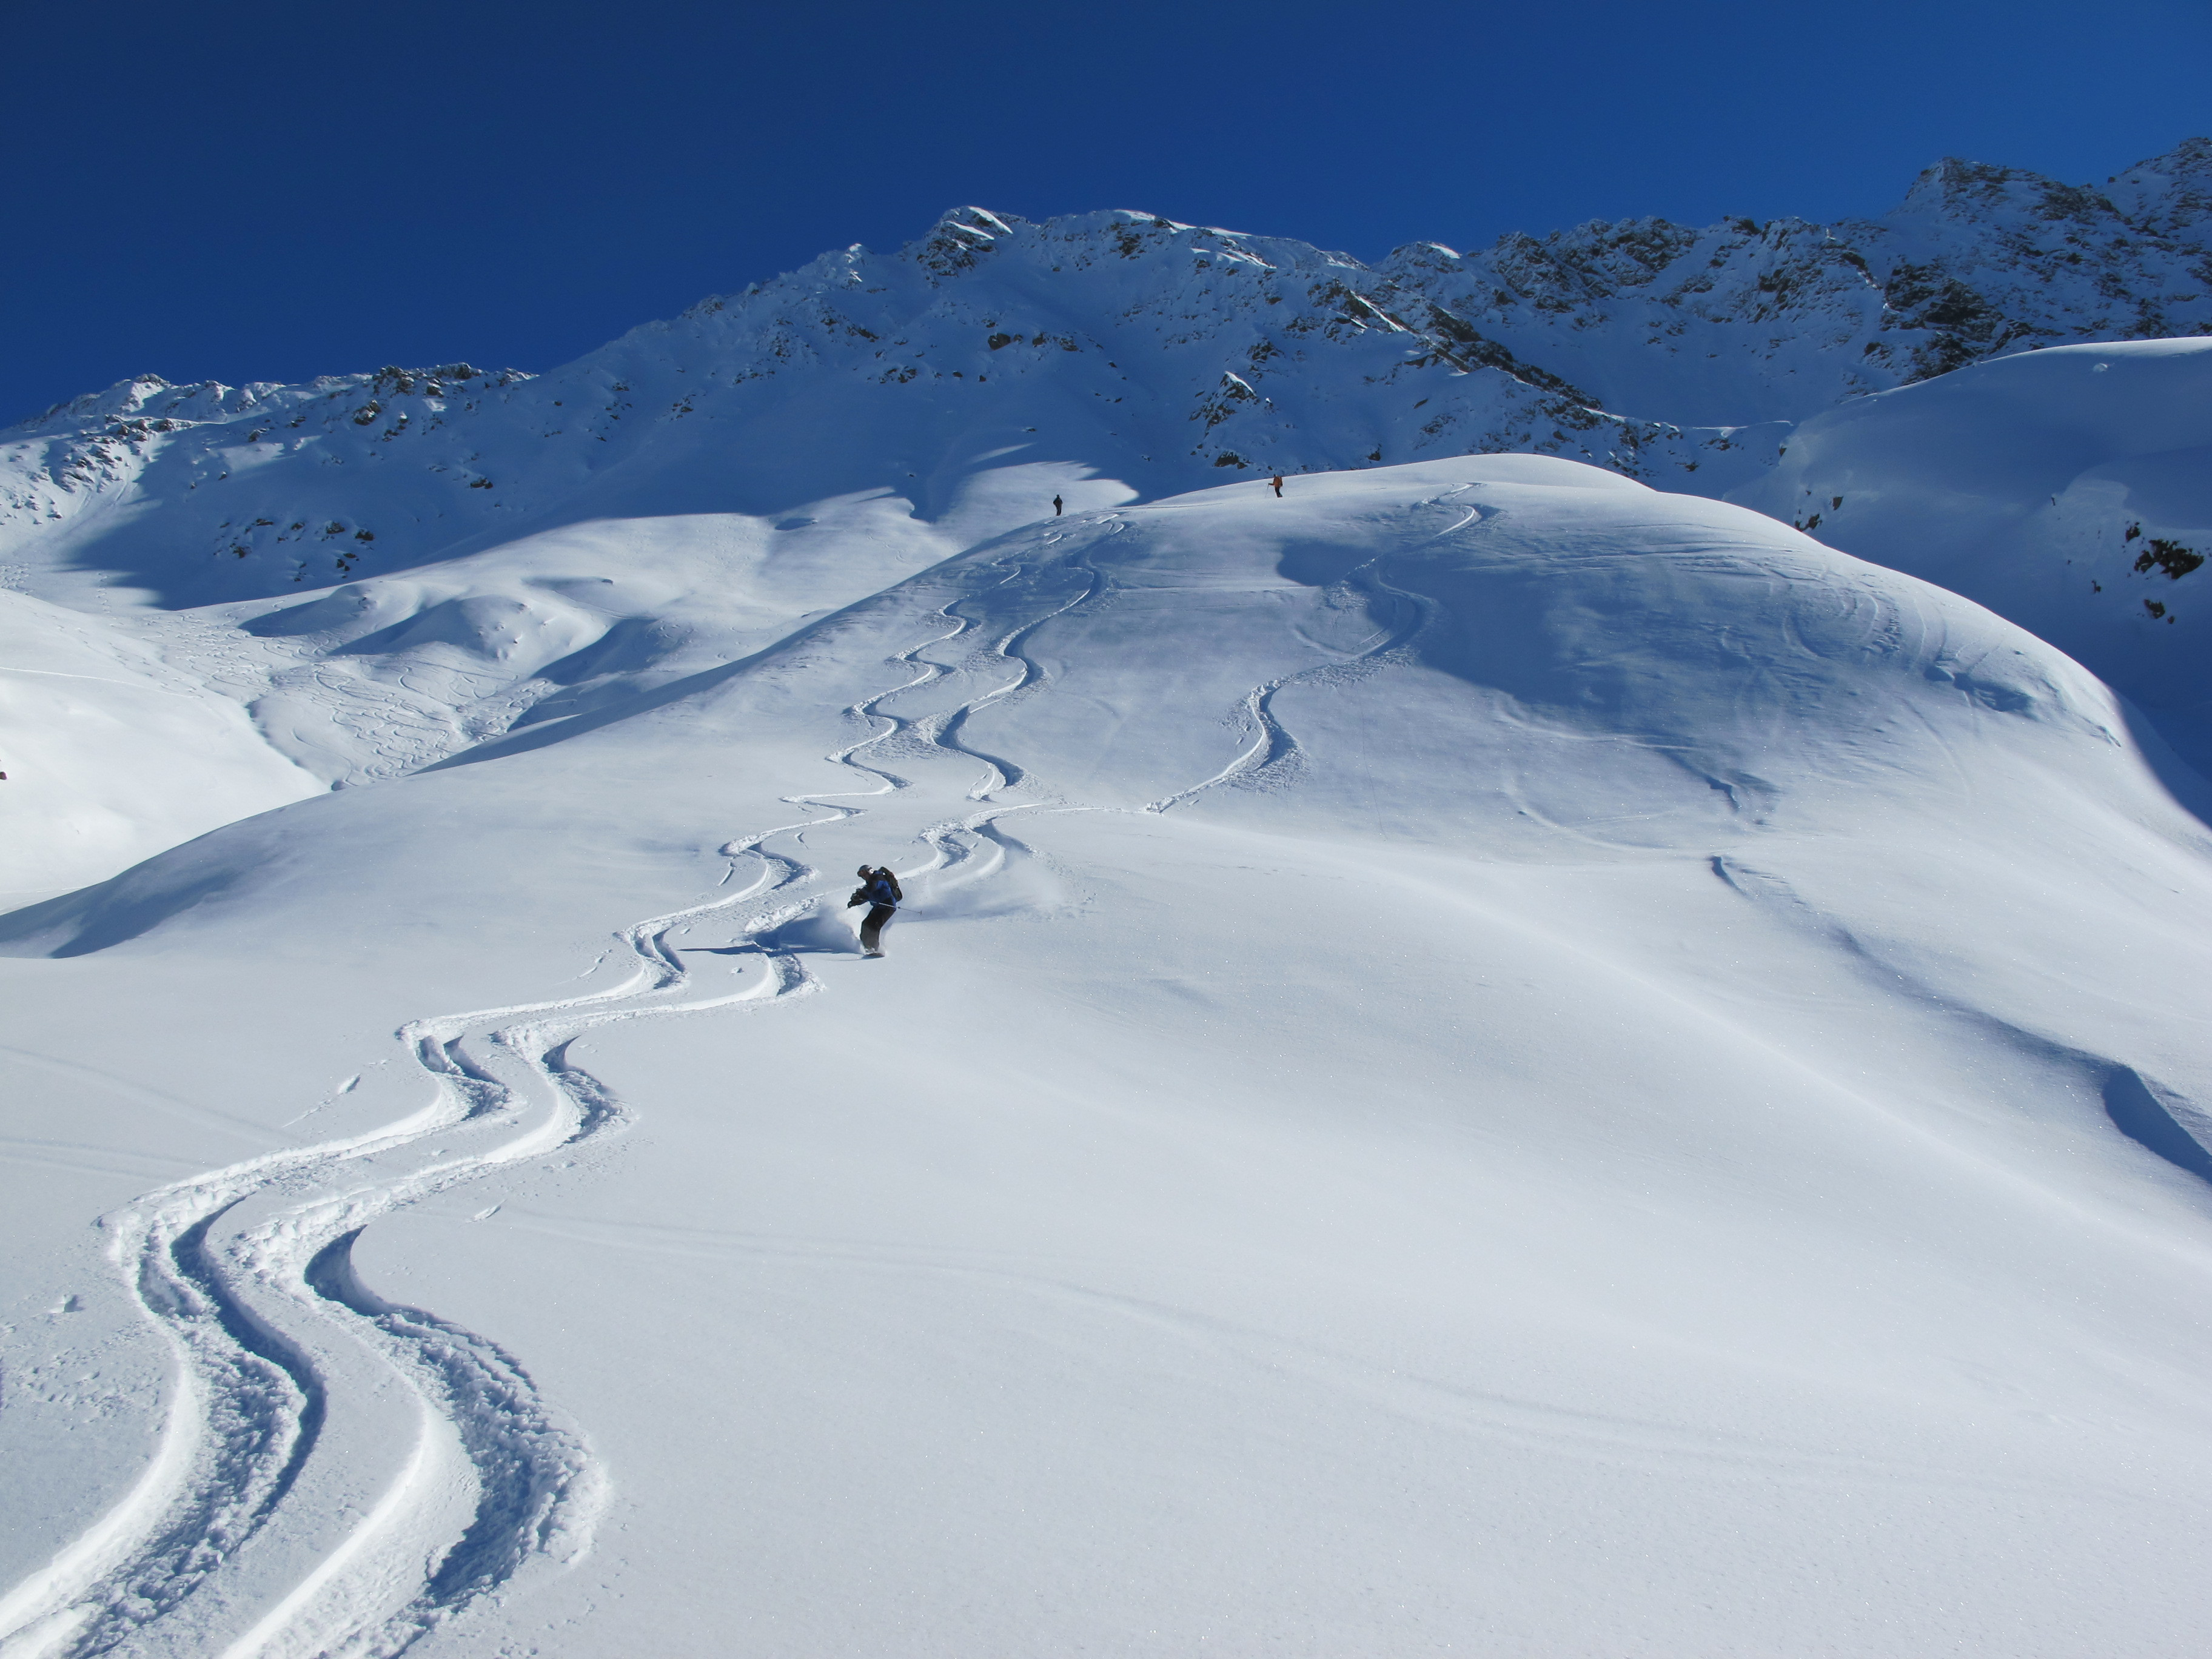 ski resort of Ischgl Austria wallpapers and images   wallpapers 3648x2736